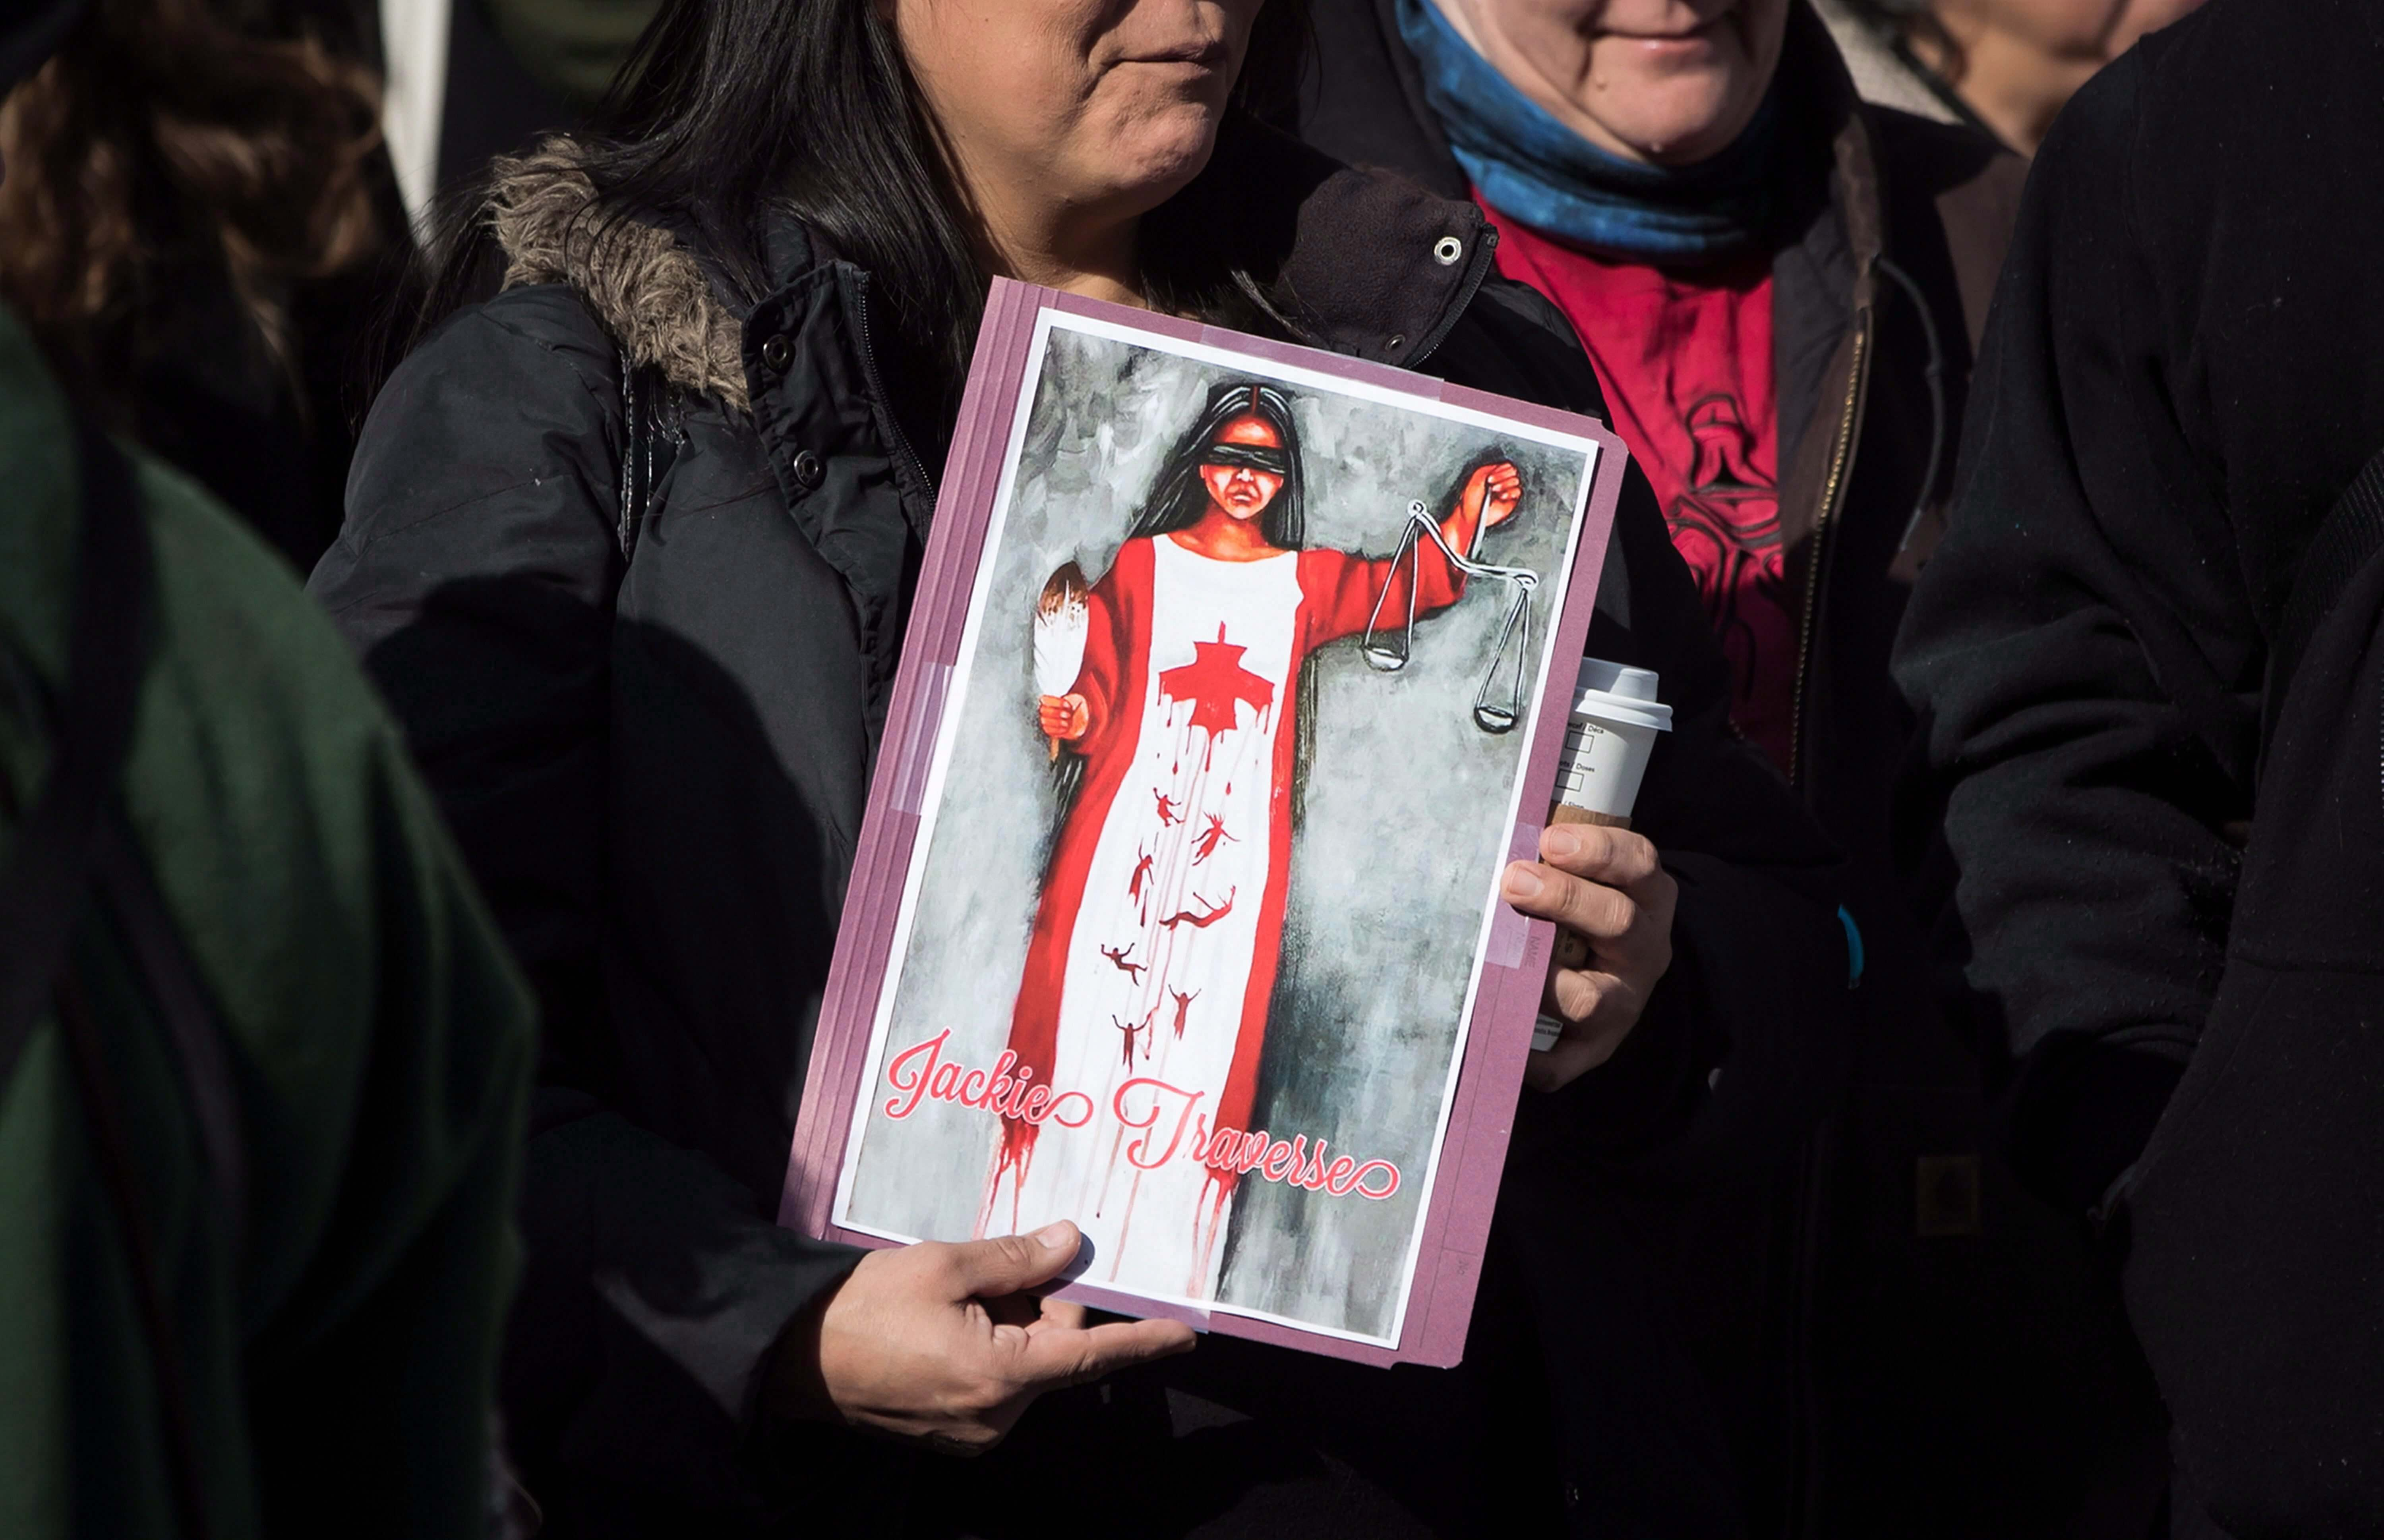 , I am a Mi'kmaq lawyer, and I despair over Colten Boushie